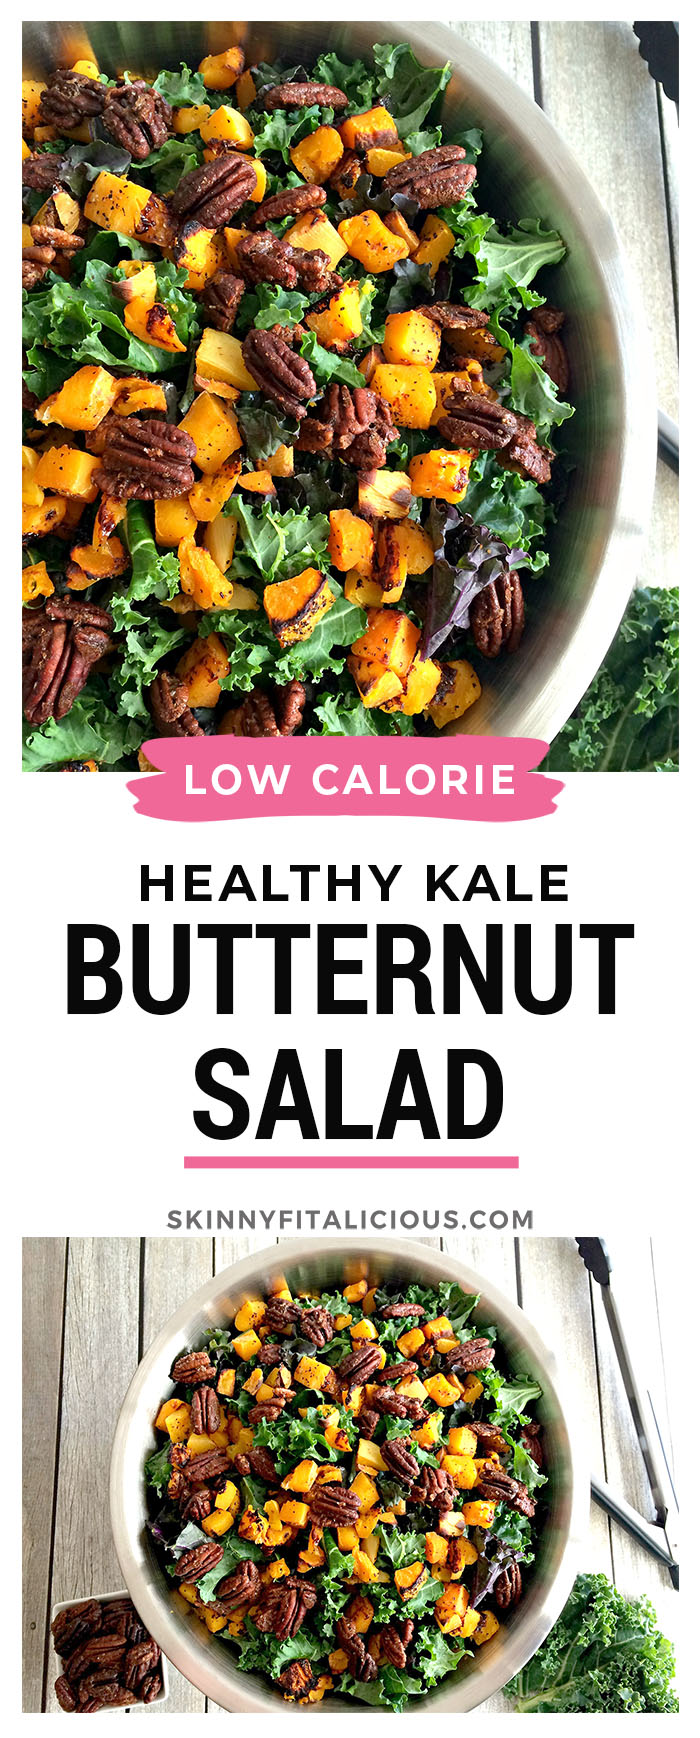 Paleo Kale Butternut Squash Salad with Candied Pecans! Dressed in a horseradish dressing and accessorized with candied pecans this winter salad is sure to warm you up with good health!